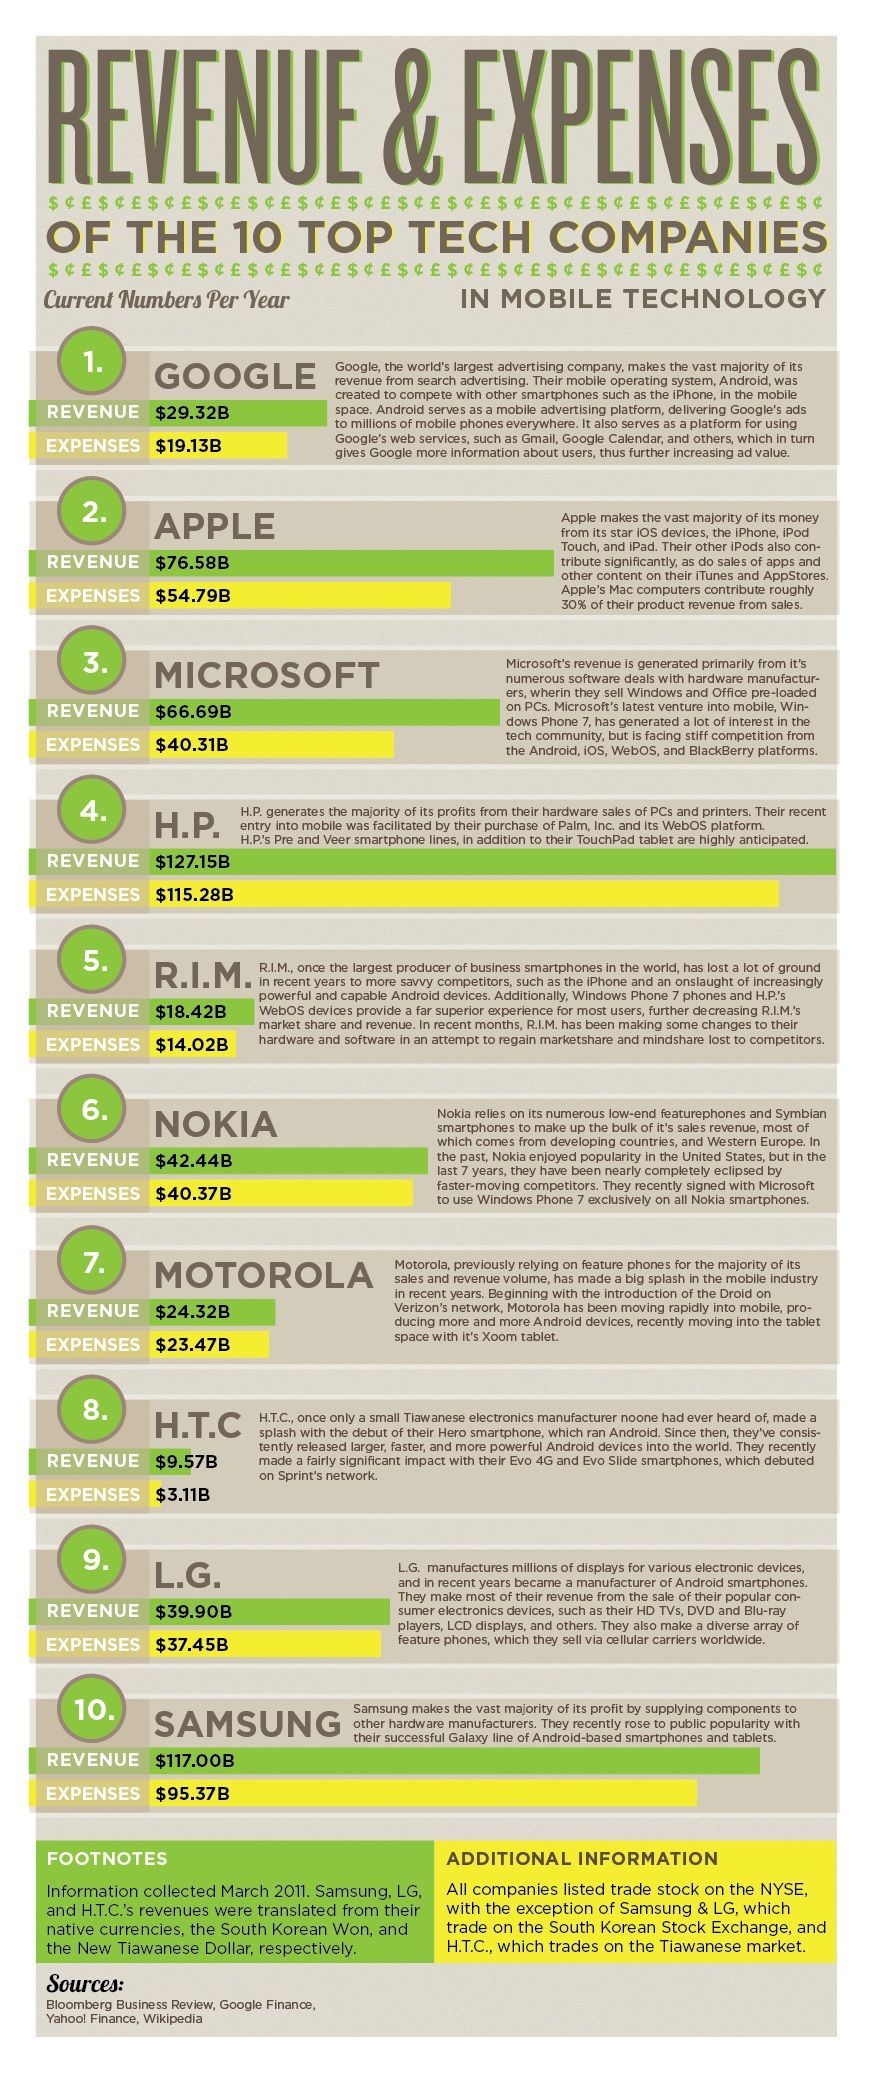 Top 10 Tech Companies Revenue And Expenses [Infographic